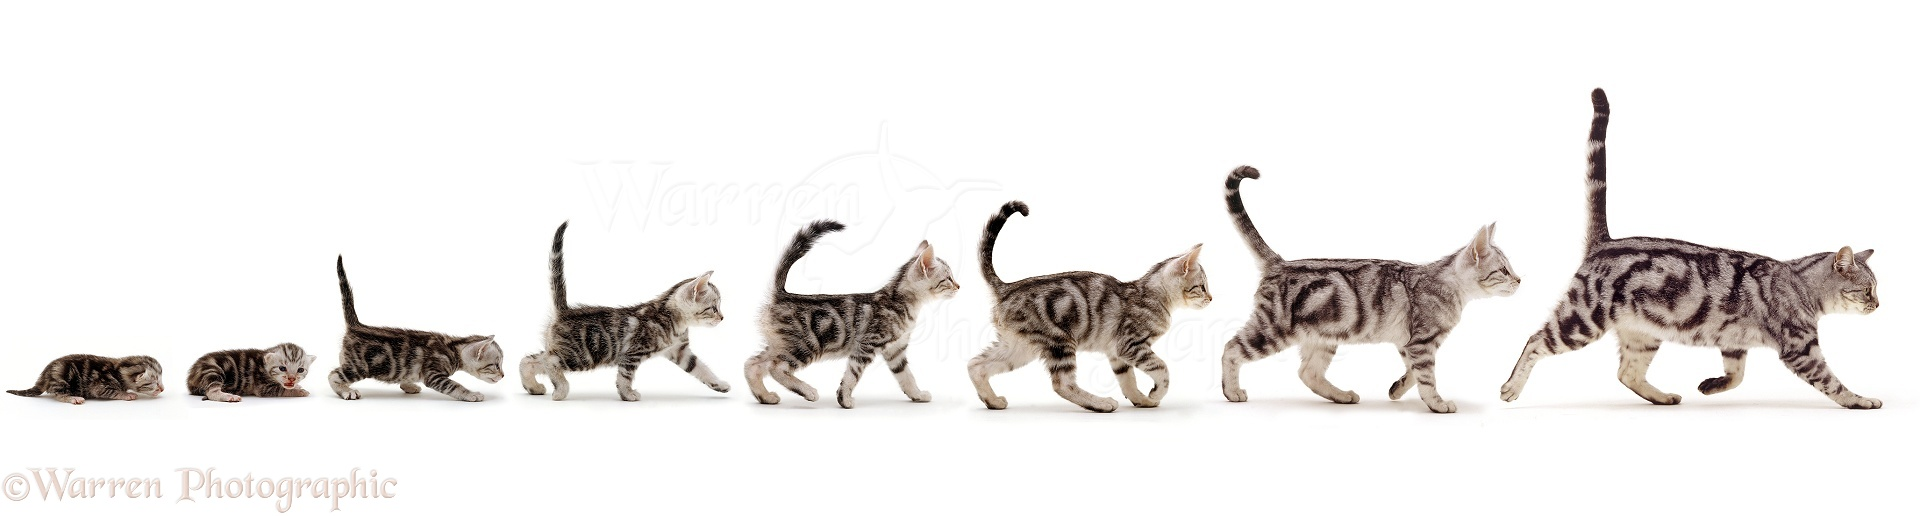 Silver Tabby Cat Growing Up Sequence Stages Photo Wp42493